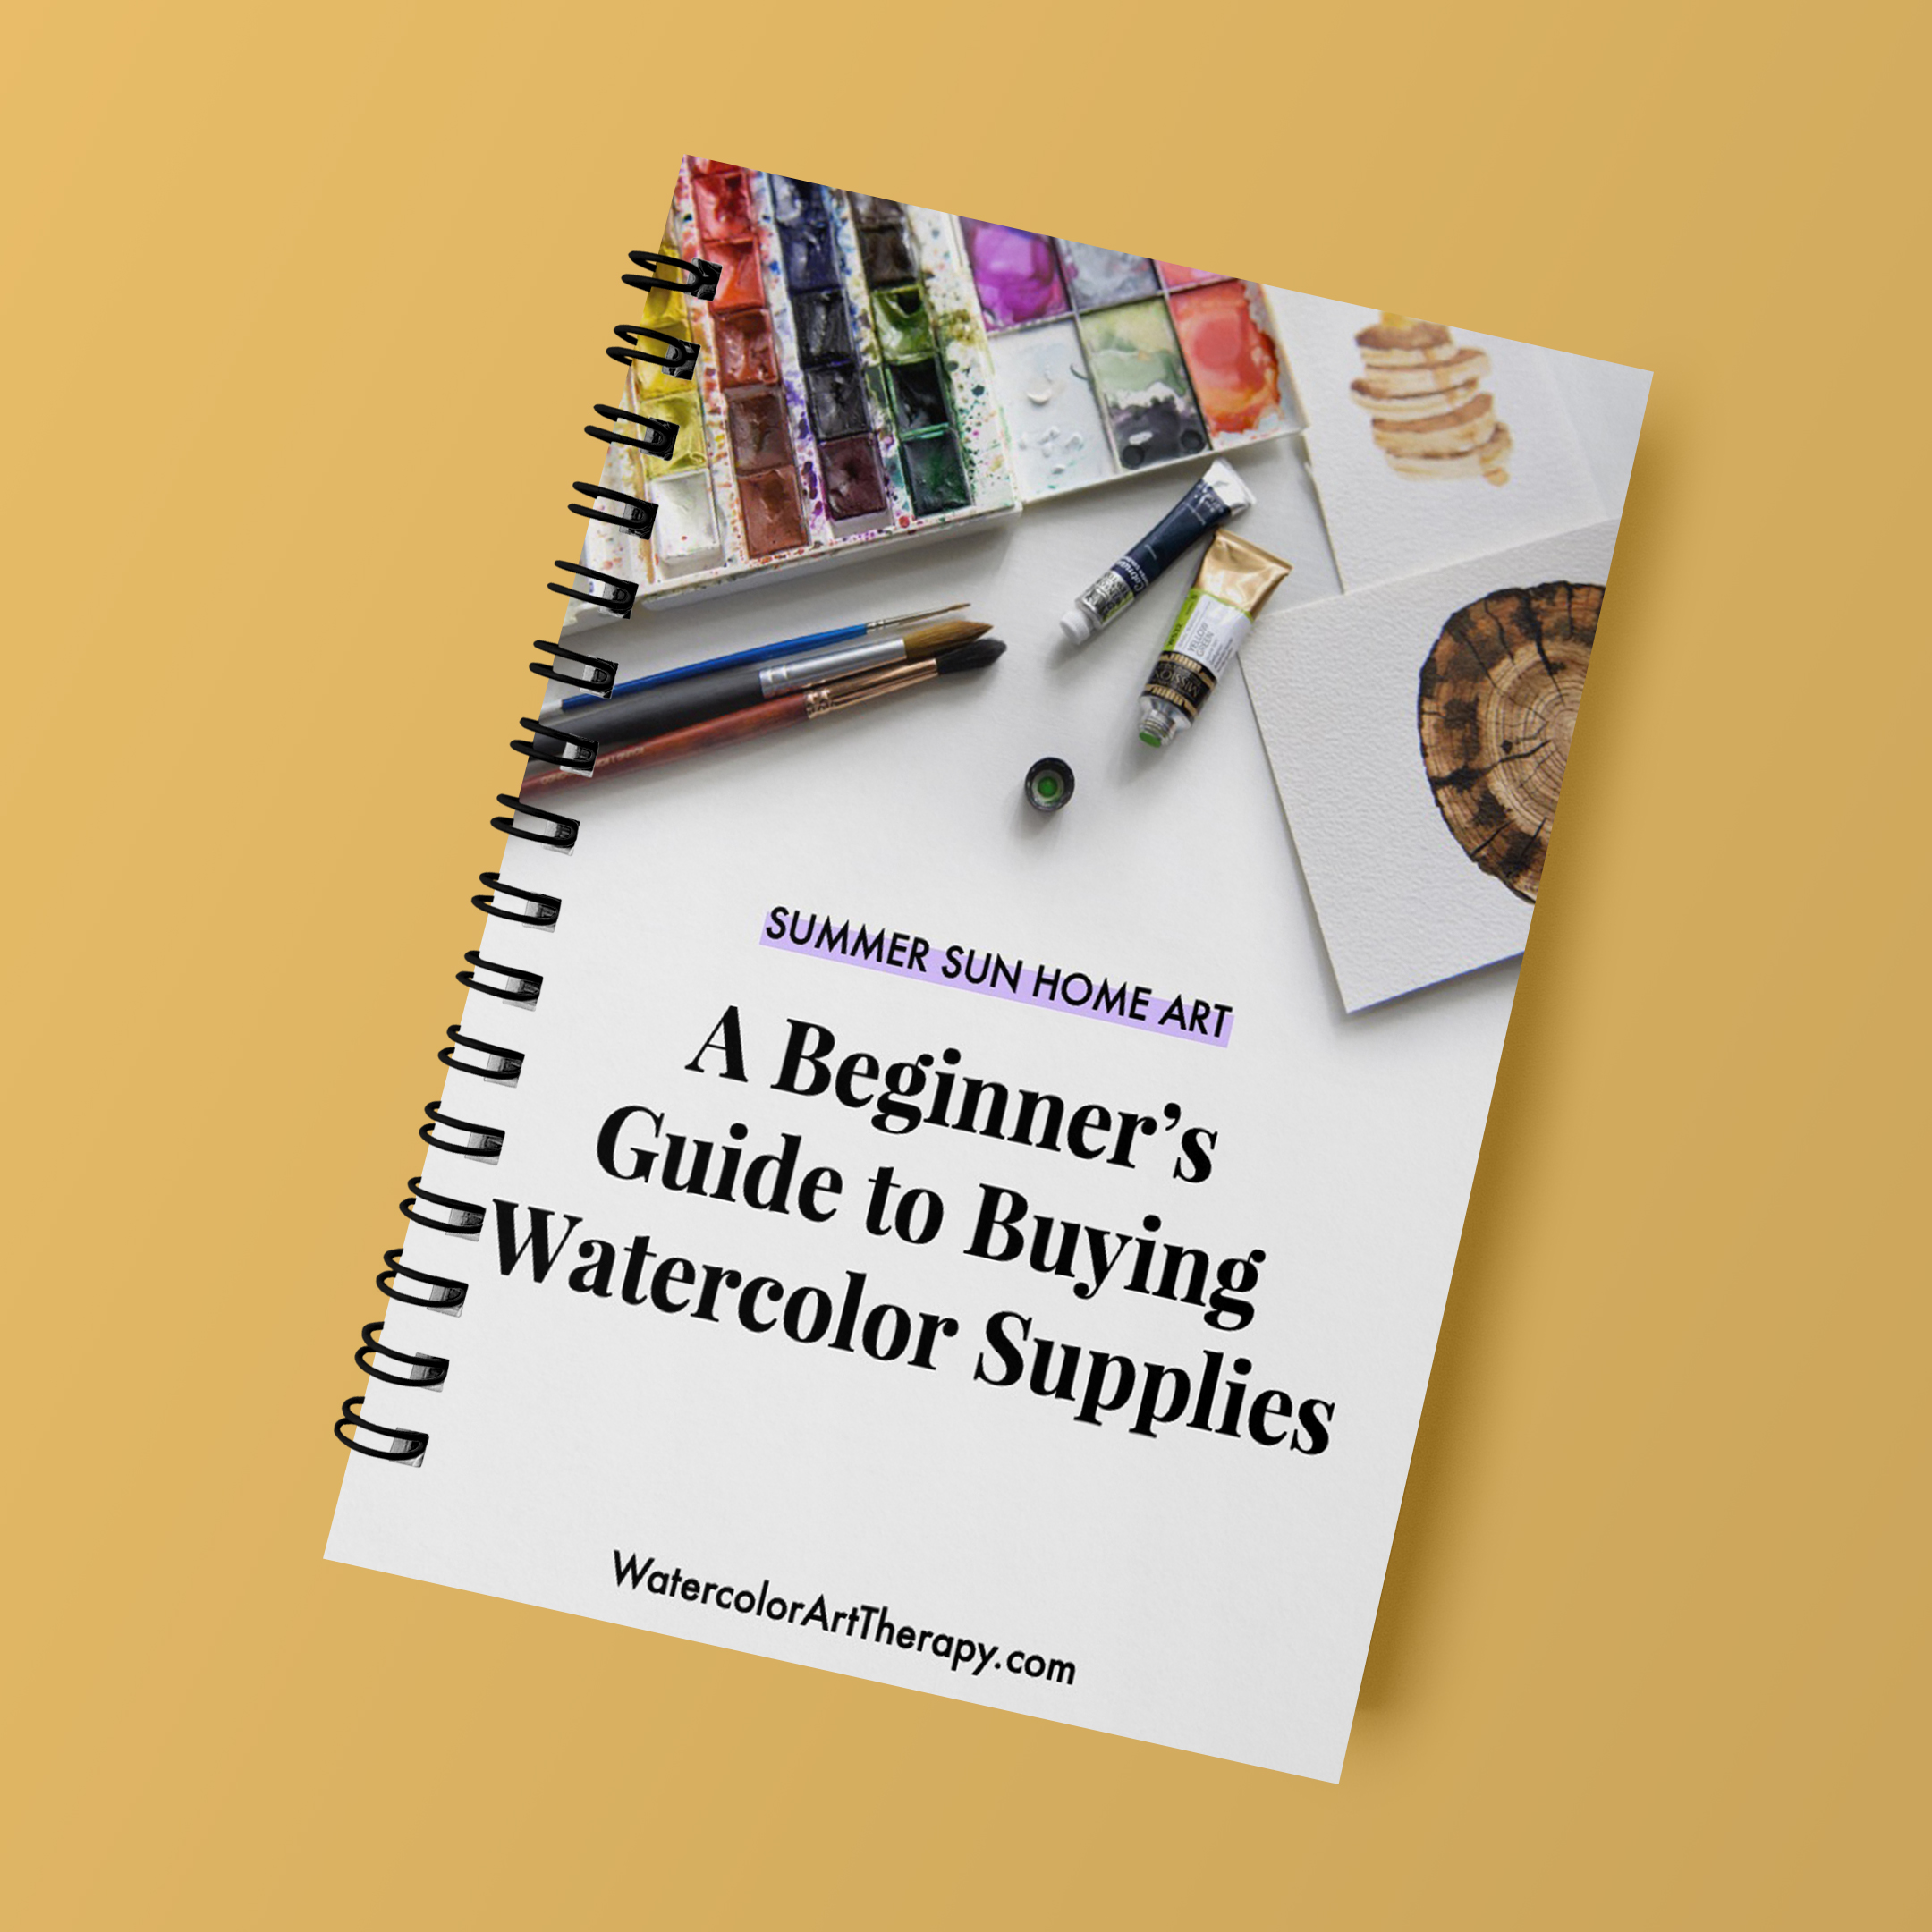 Stuck on choosing the right supplies? - Let me help you find a perfect set of watercolor supplies that suits your need and budget. Grab my FREE guide that walks you through the key things to consider before buying paints, paper and brushes.